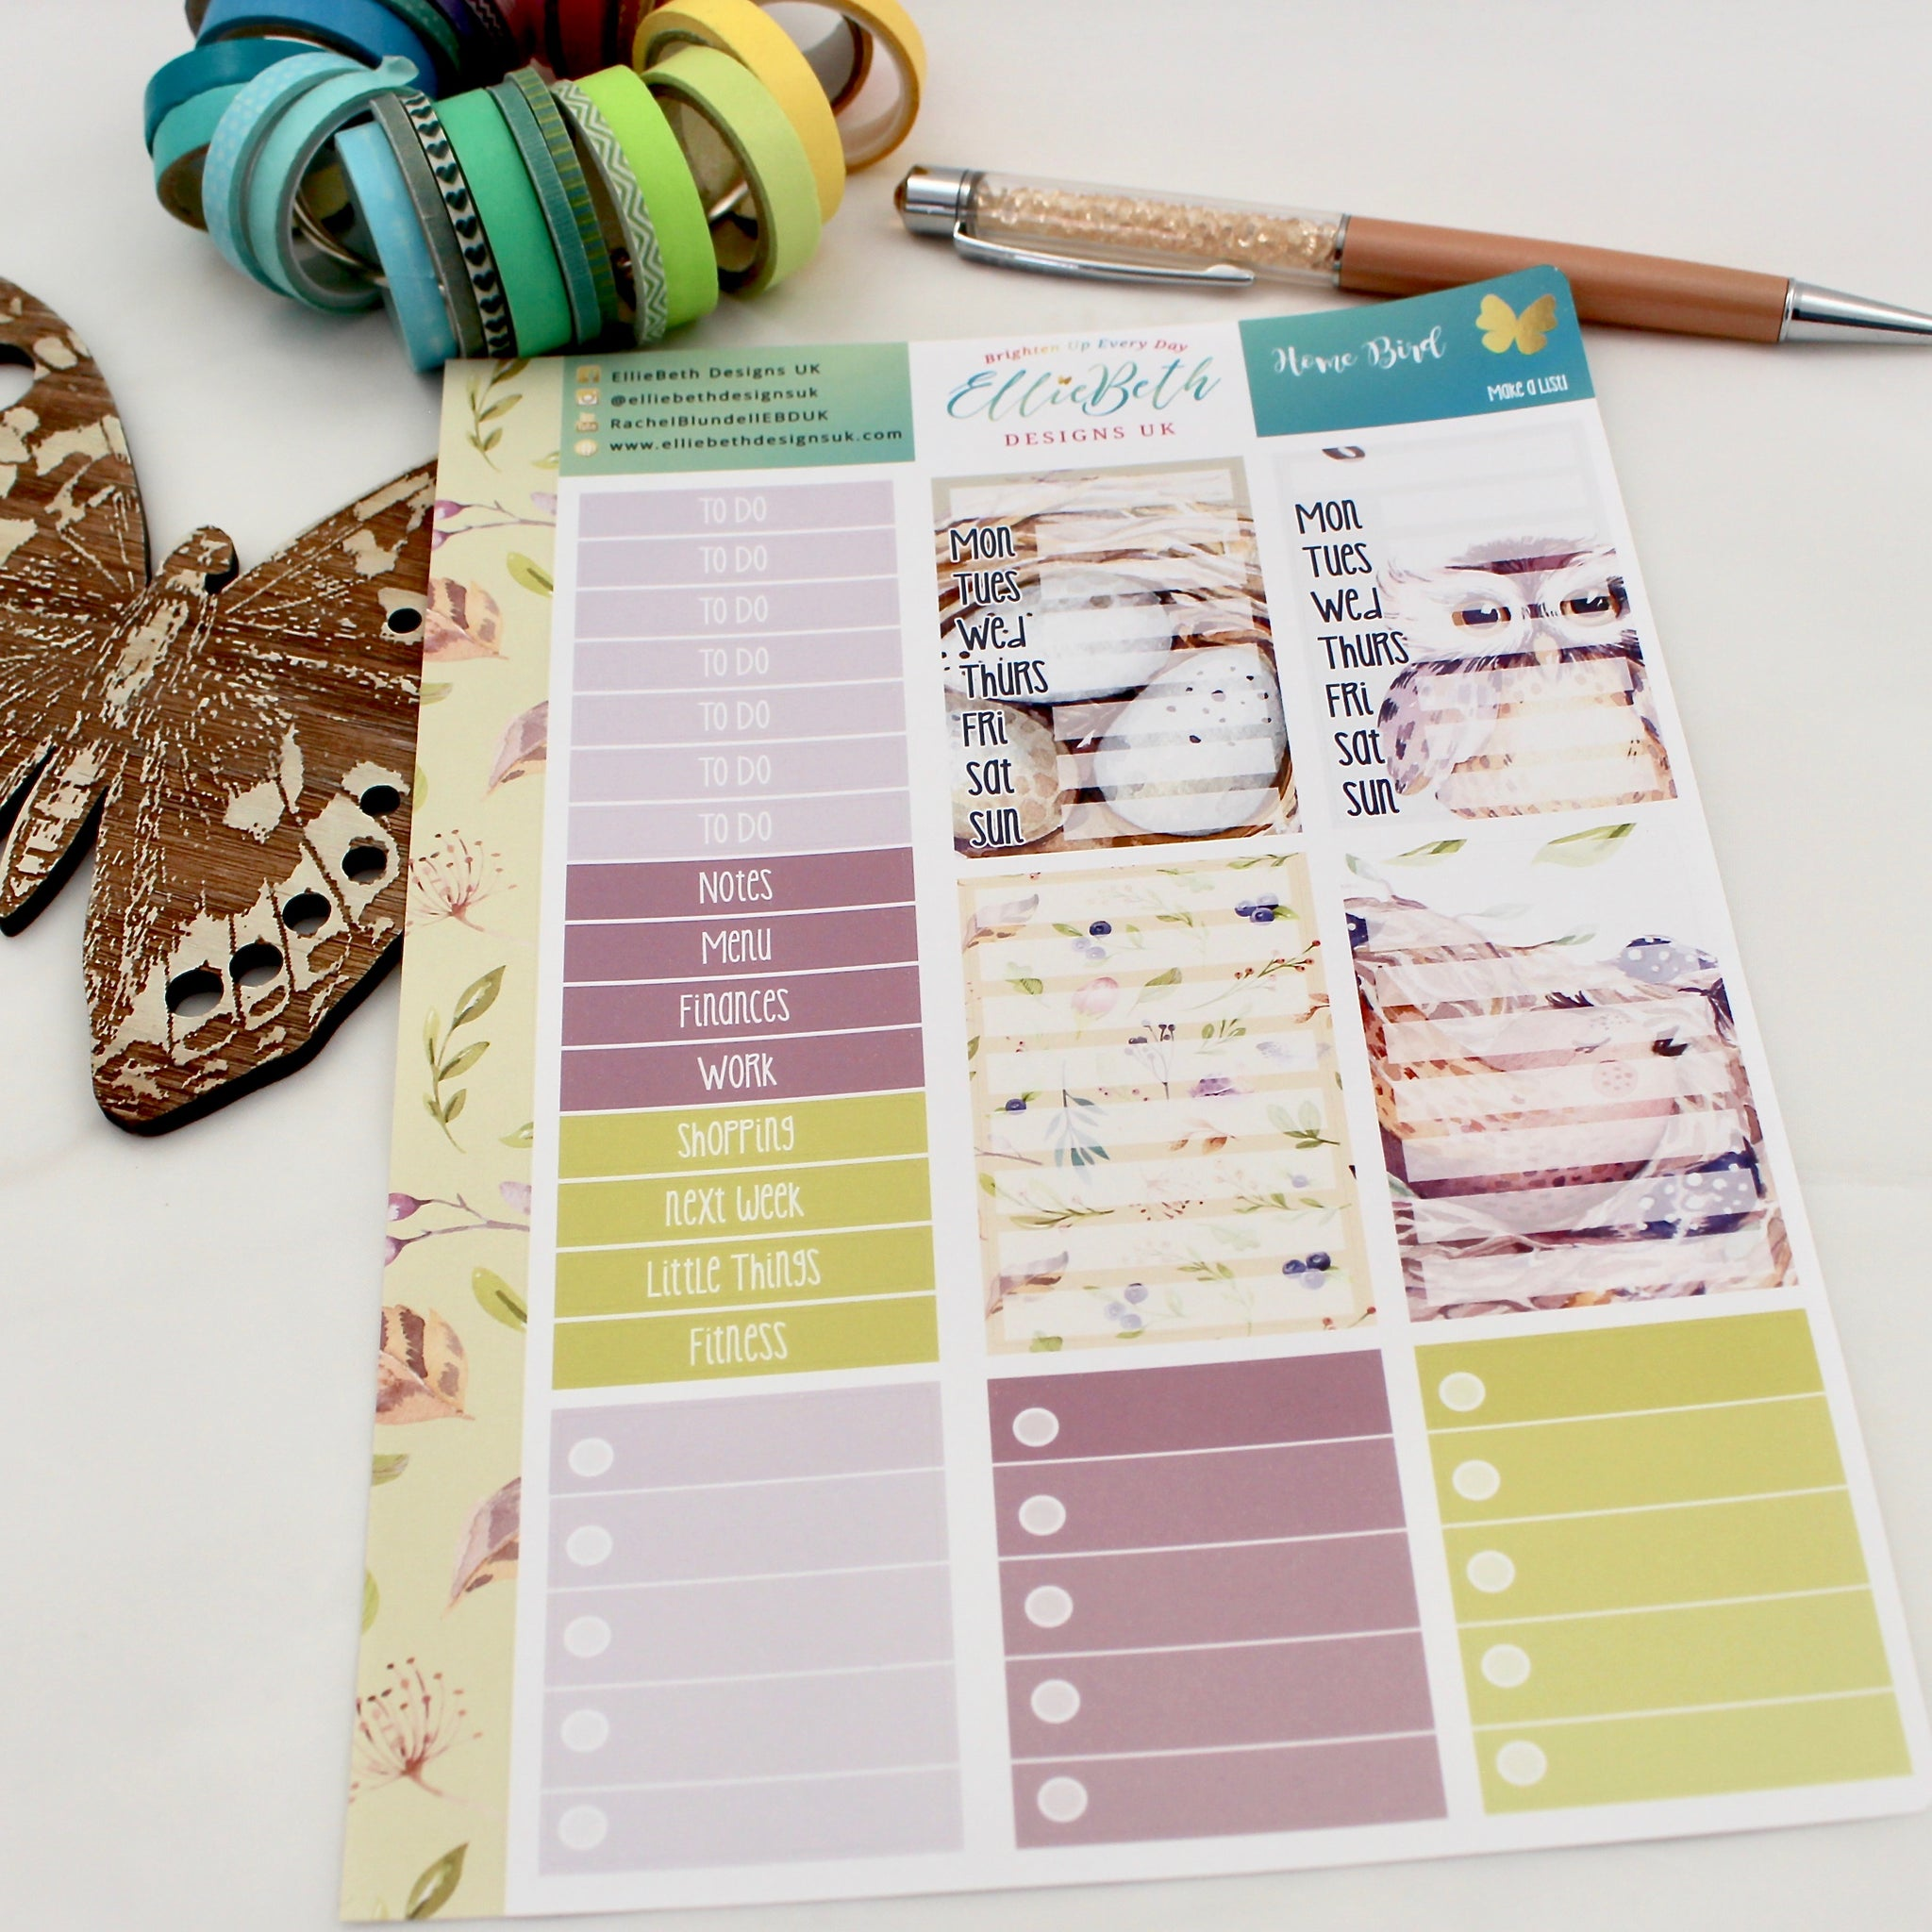 'Home Bird' - Make a List Sheet -  A5 binder ready planner stickers